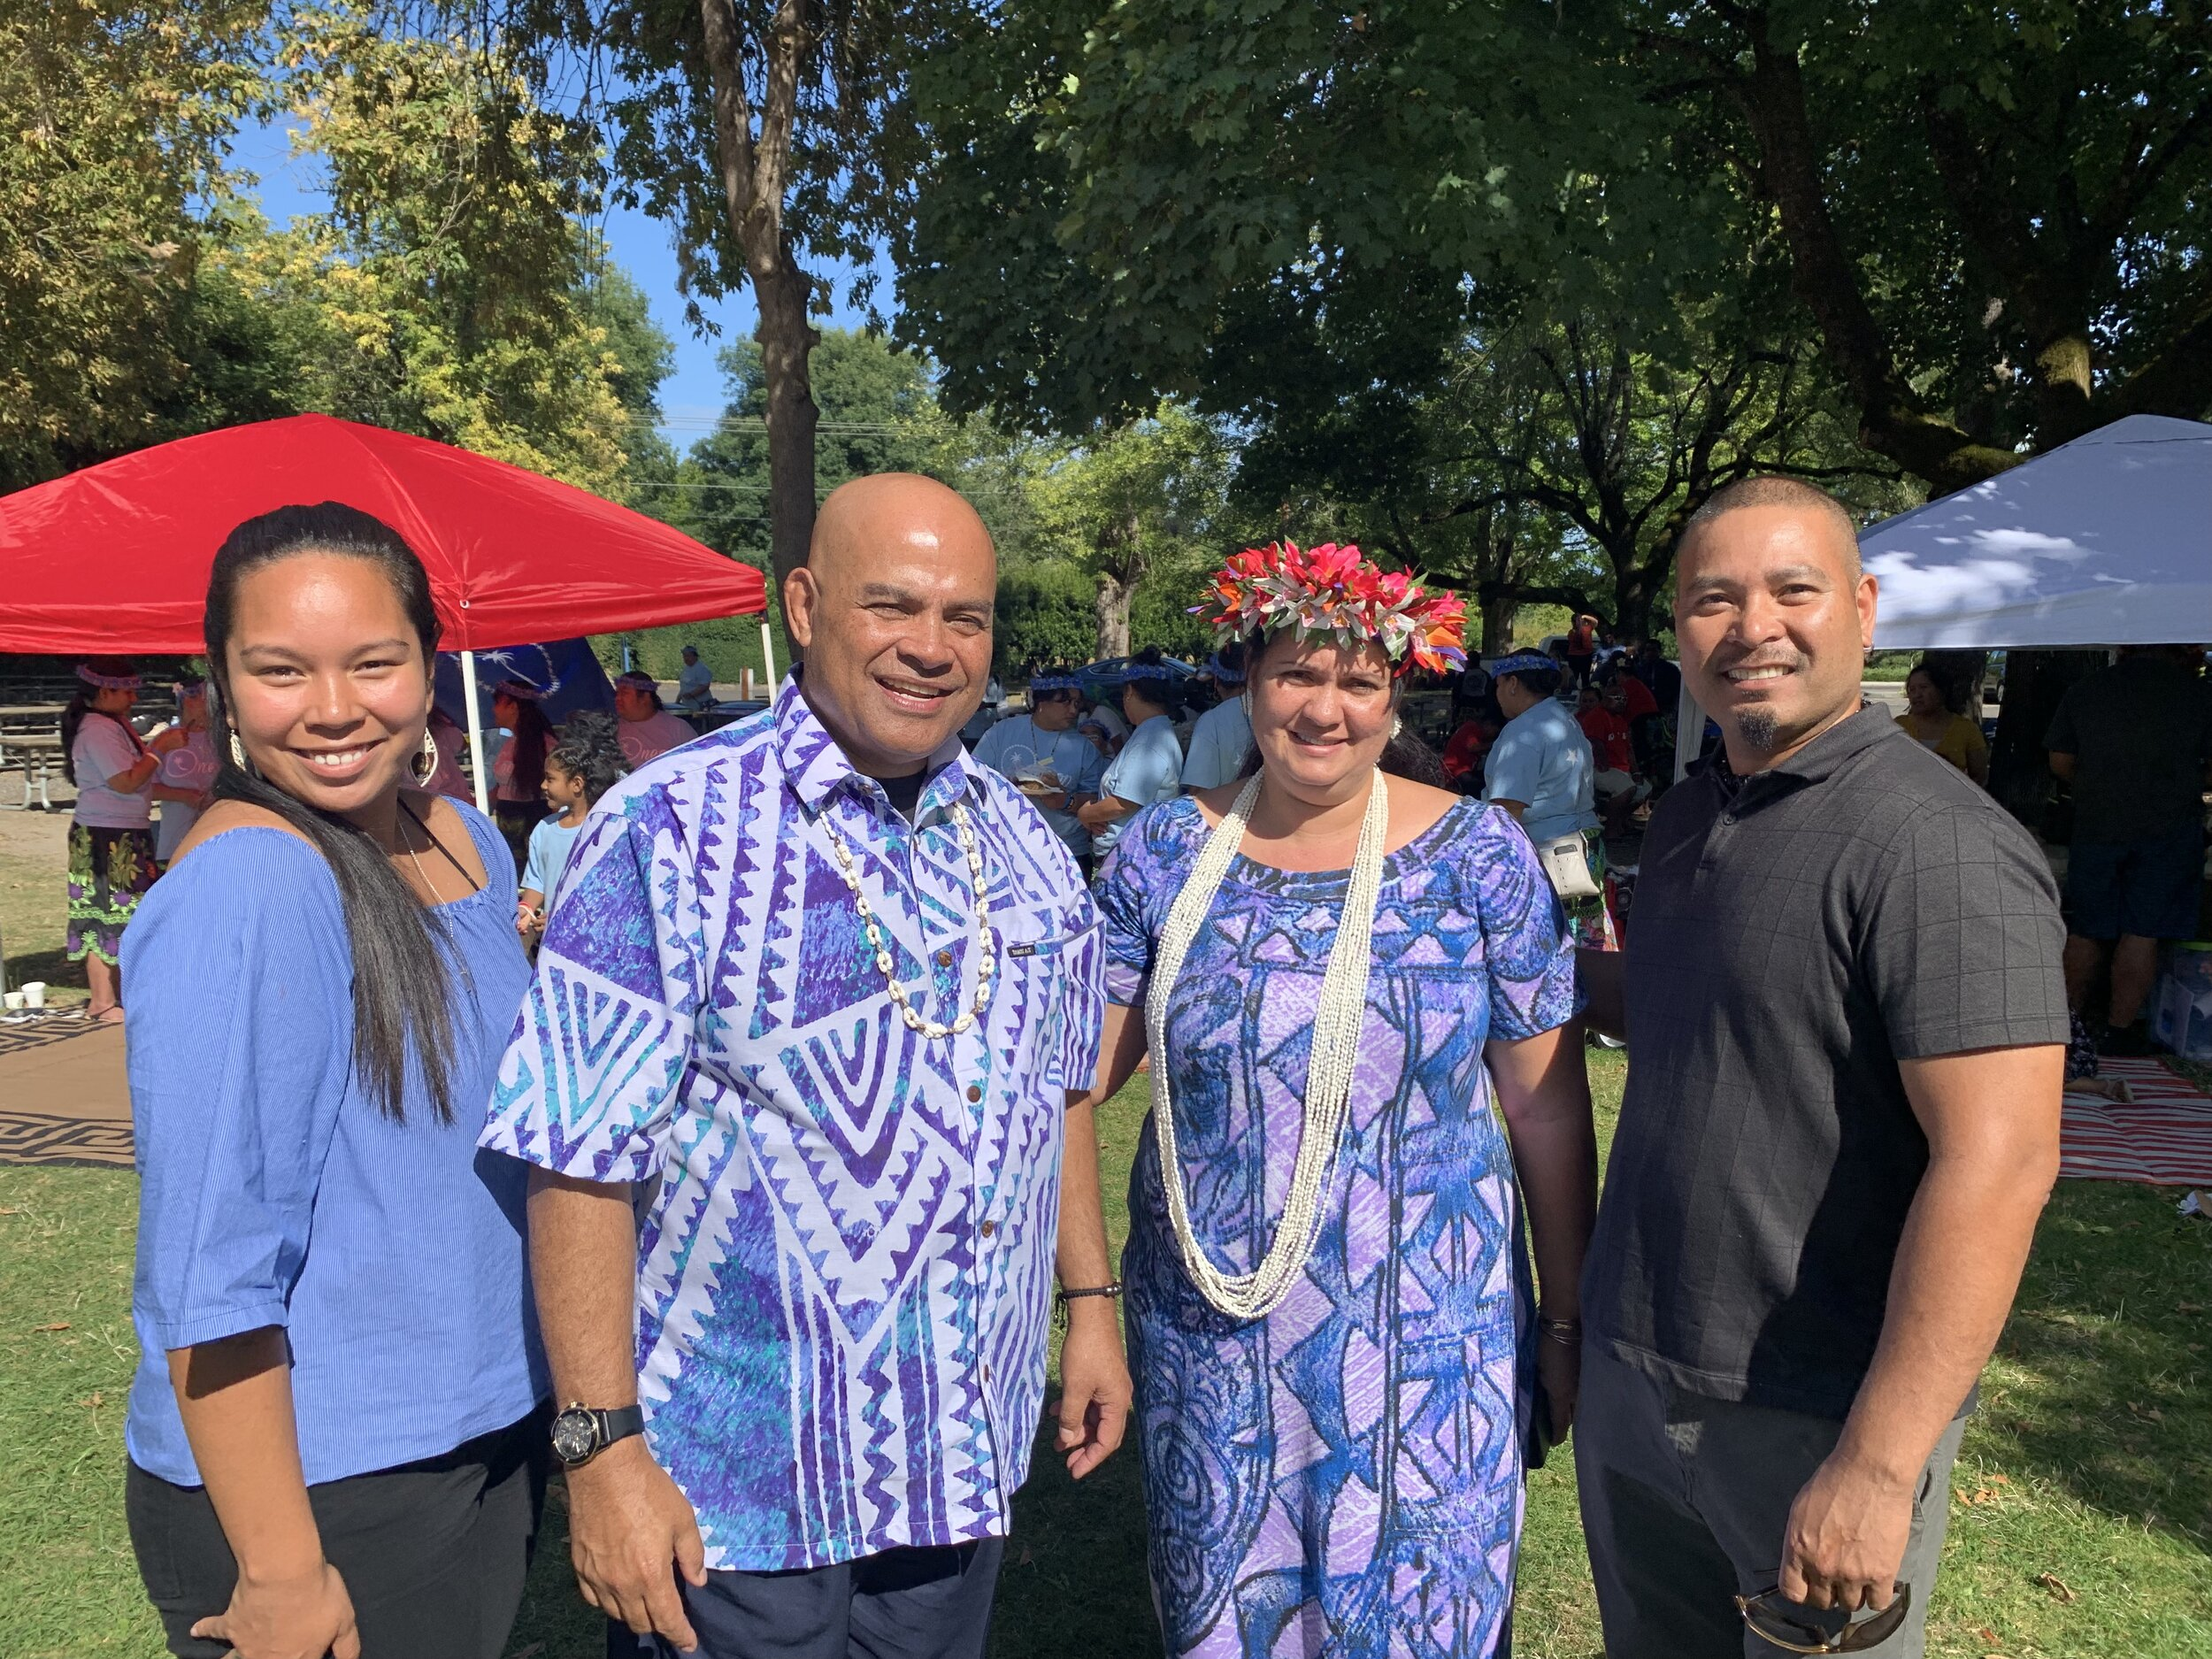 2019 2nd Annual FSM Community Day | Vice-President of South Pacific Islander Organization, MichaeLynn Kanichy; His Excellency David W. Panuelo; FSM First Lady Patricia Edwin; and Rickson Kanichy.